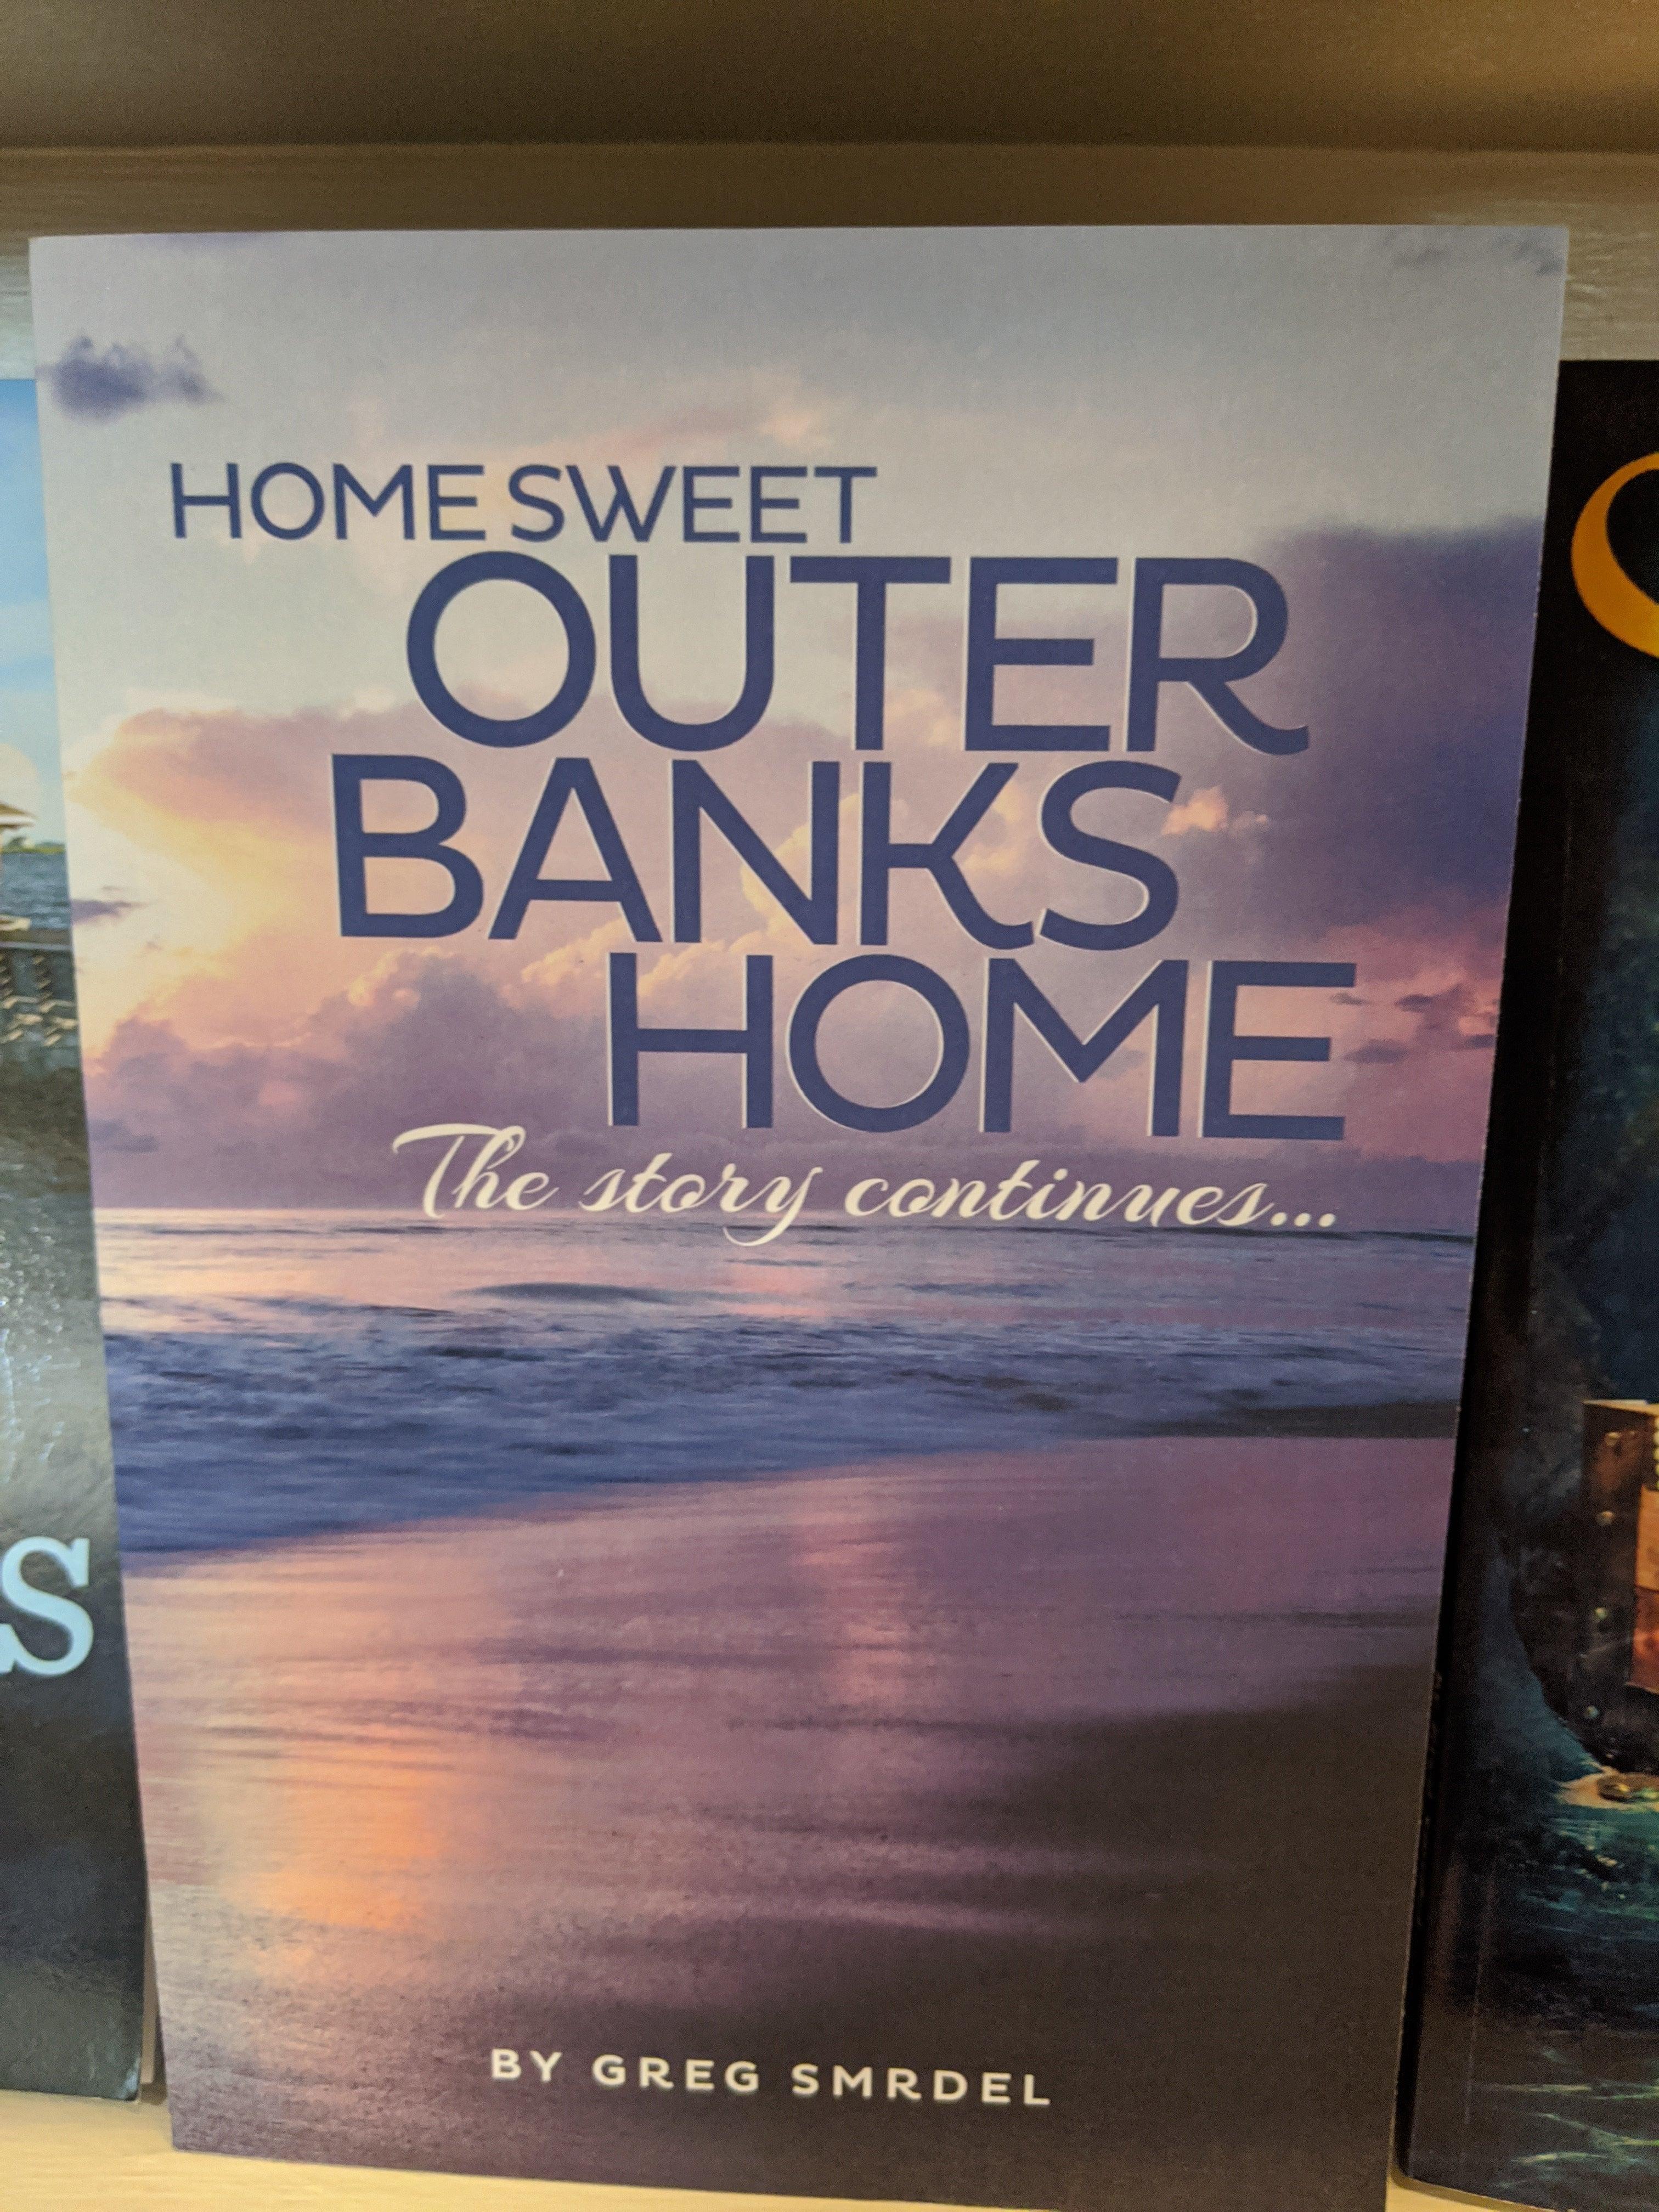 Home Sweet Outer Banks Home: The Story Continues by Greg Smrdel *signed copy*